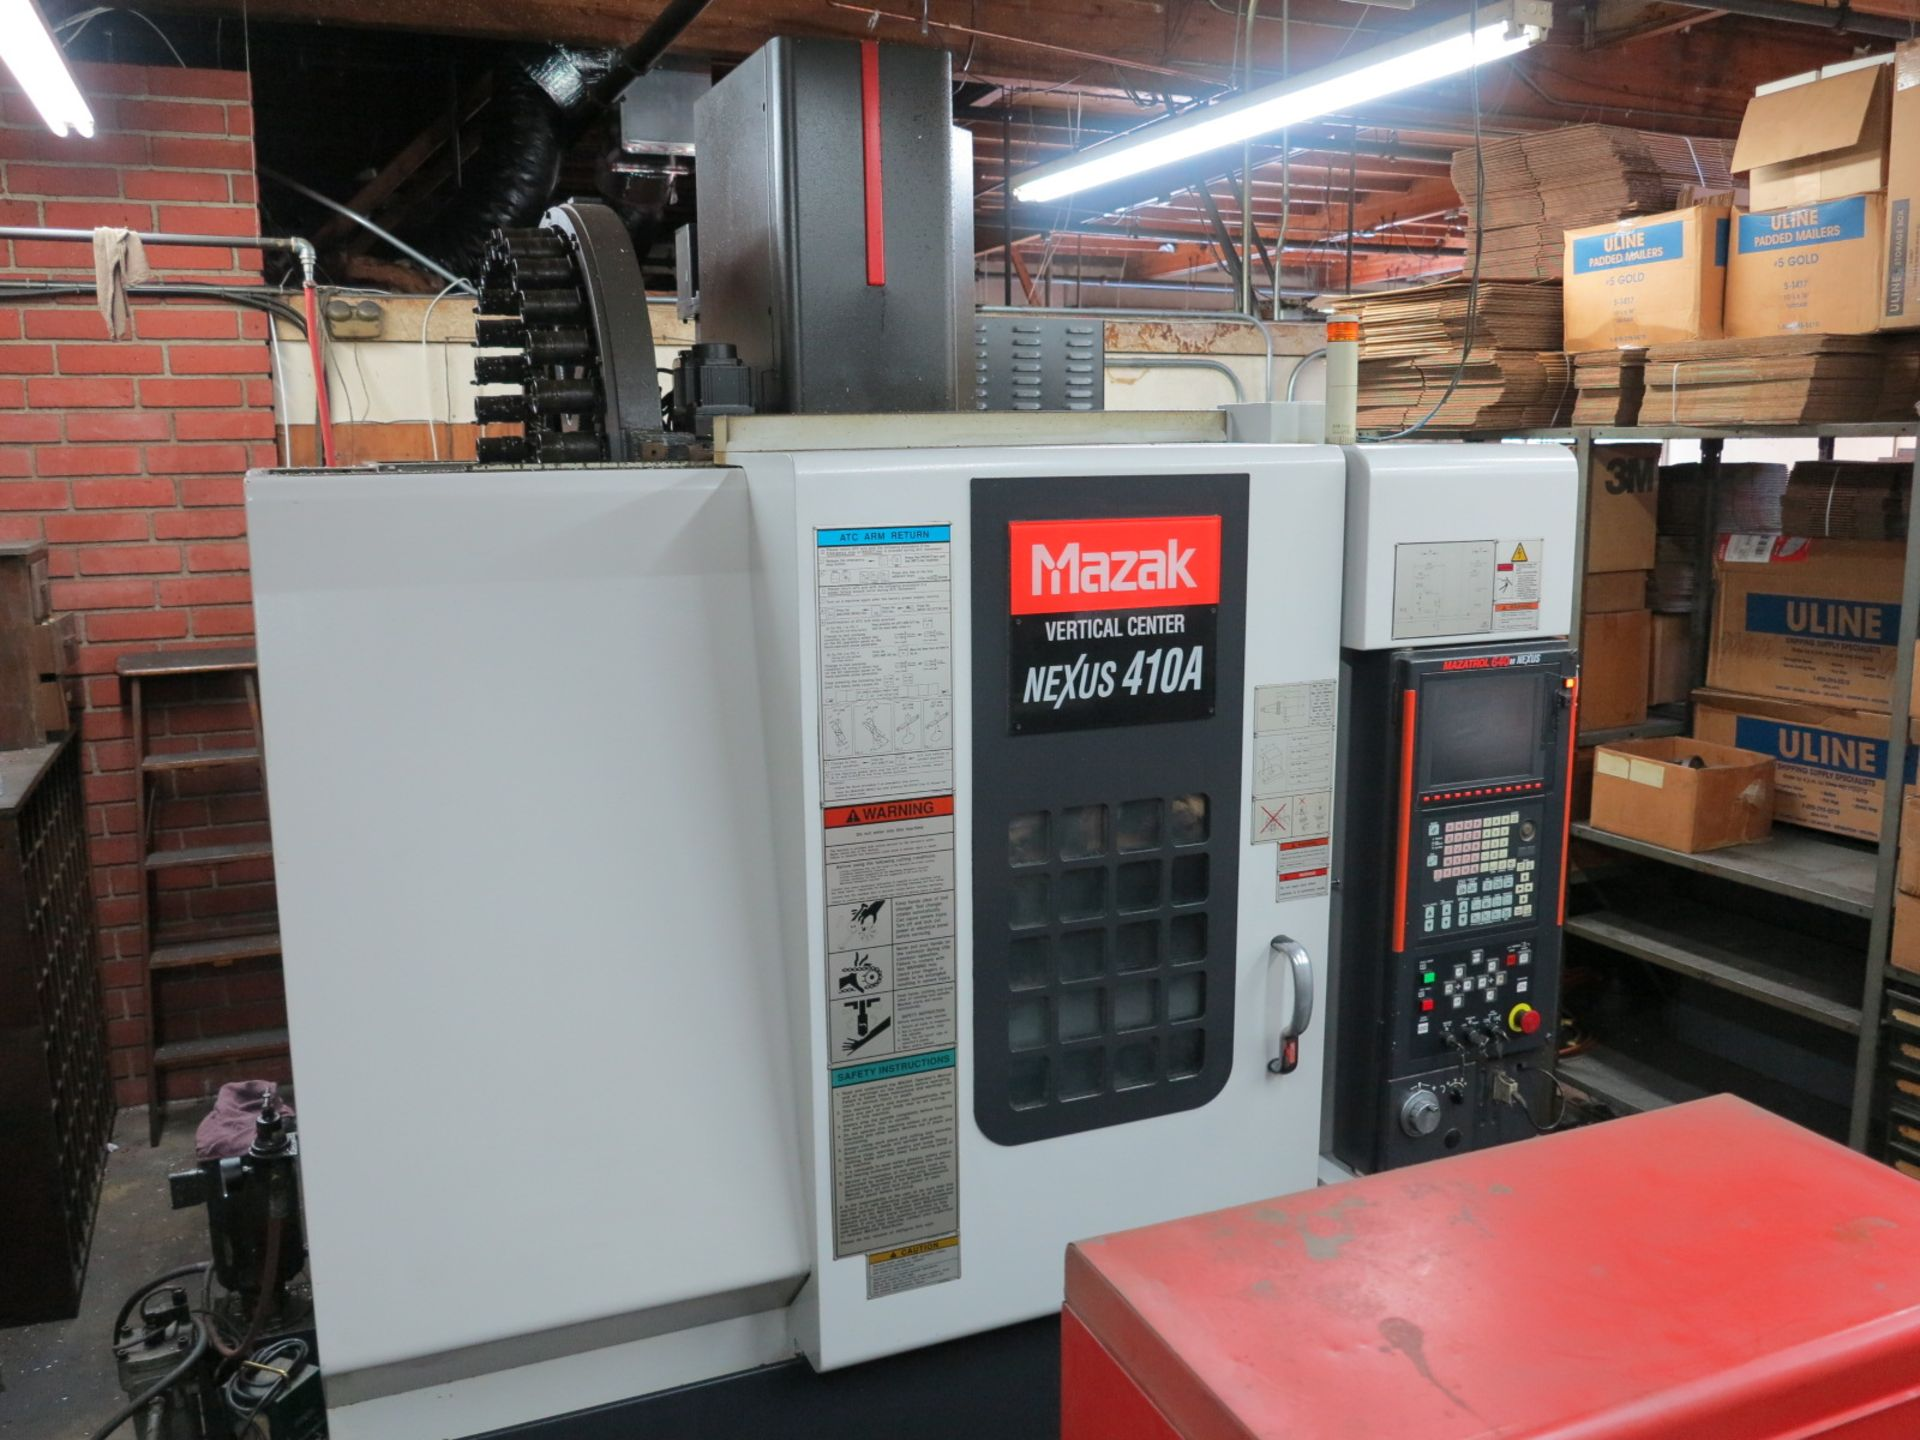 Lot 0A - 2005 MAZAK VCN-410A CNC VERTICAL MACHINING CENTER, MAZATROL 640 T NEXUS CONTROL